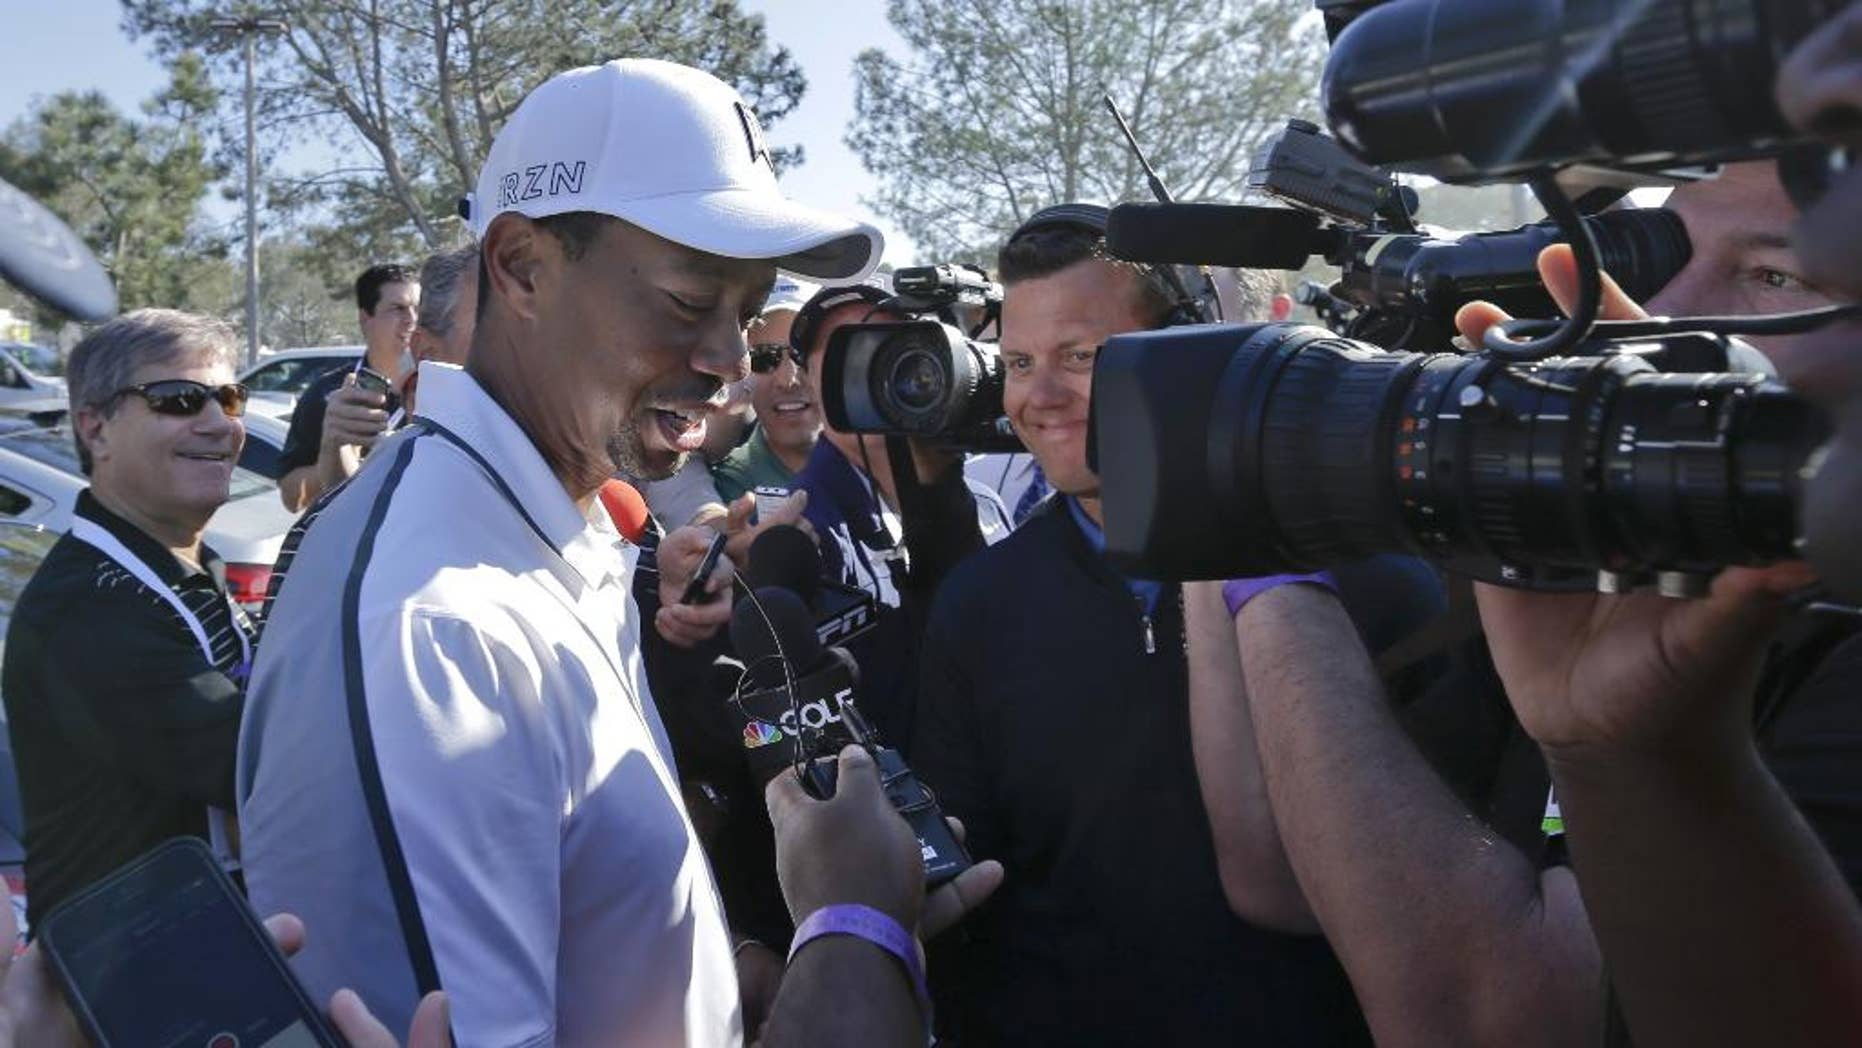 FILE - In this Feb. 5, 2015, file photo, Tiger Woods speaks to reporters after withdrawing during the first round of the Farmers Insurance Open golf tournament in San Diego. Woods won't be at Bay Hill next week for the Arnold Palmer Invitational. He still isn't ruling out the Masters. Woods said on his website Friday, March 13, 2015,  that he will not play at the tournament he has won eight times. (AP Photo/Gregory Bull,, File)